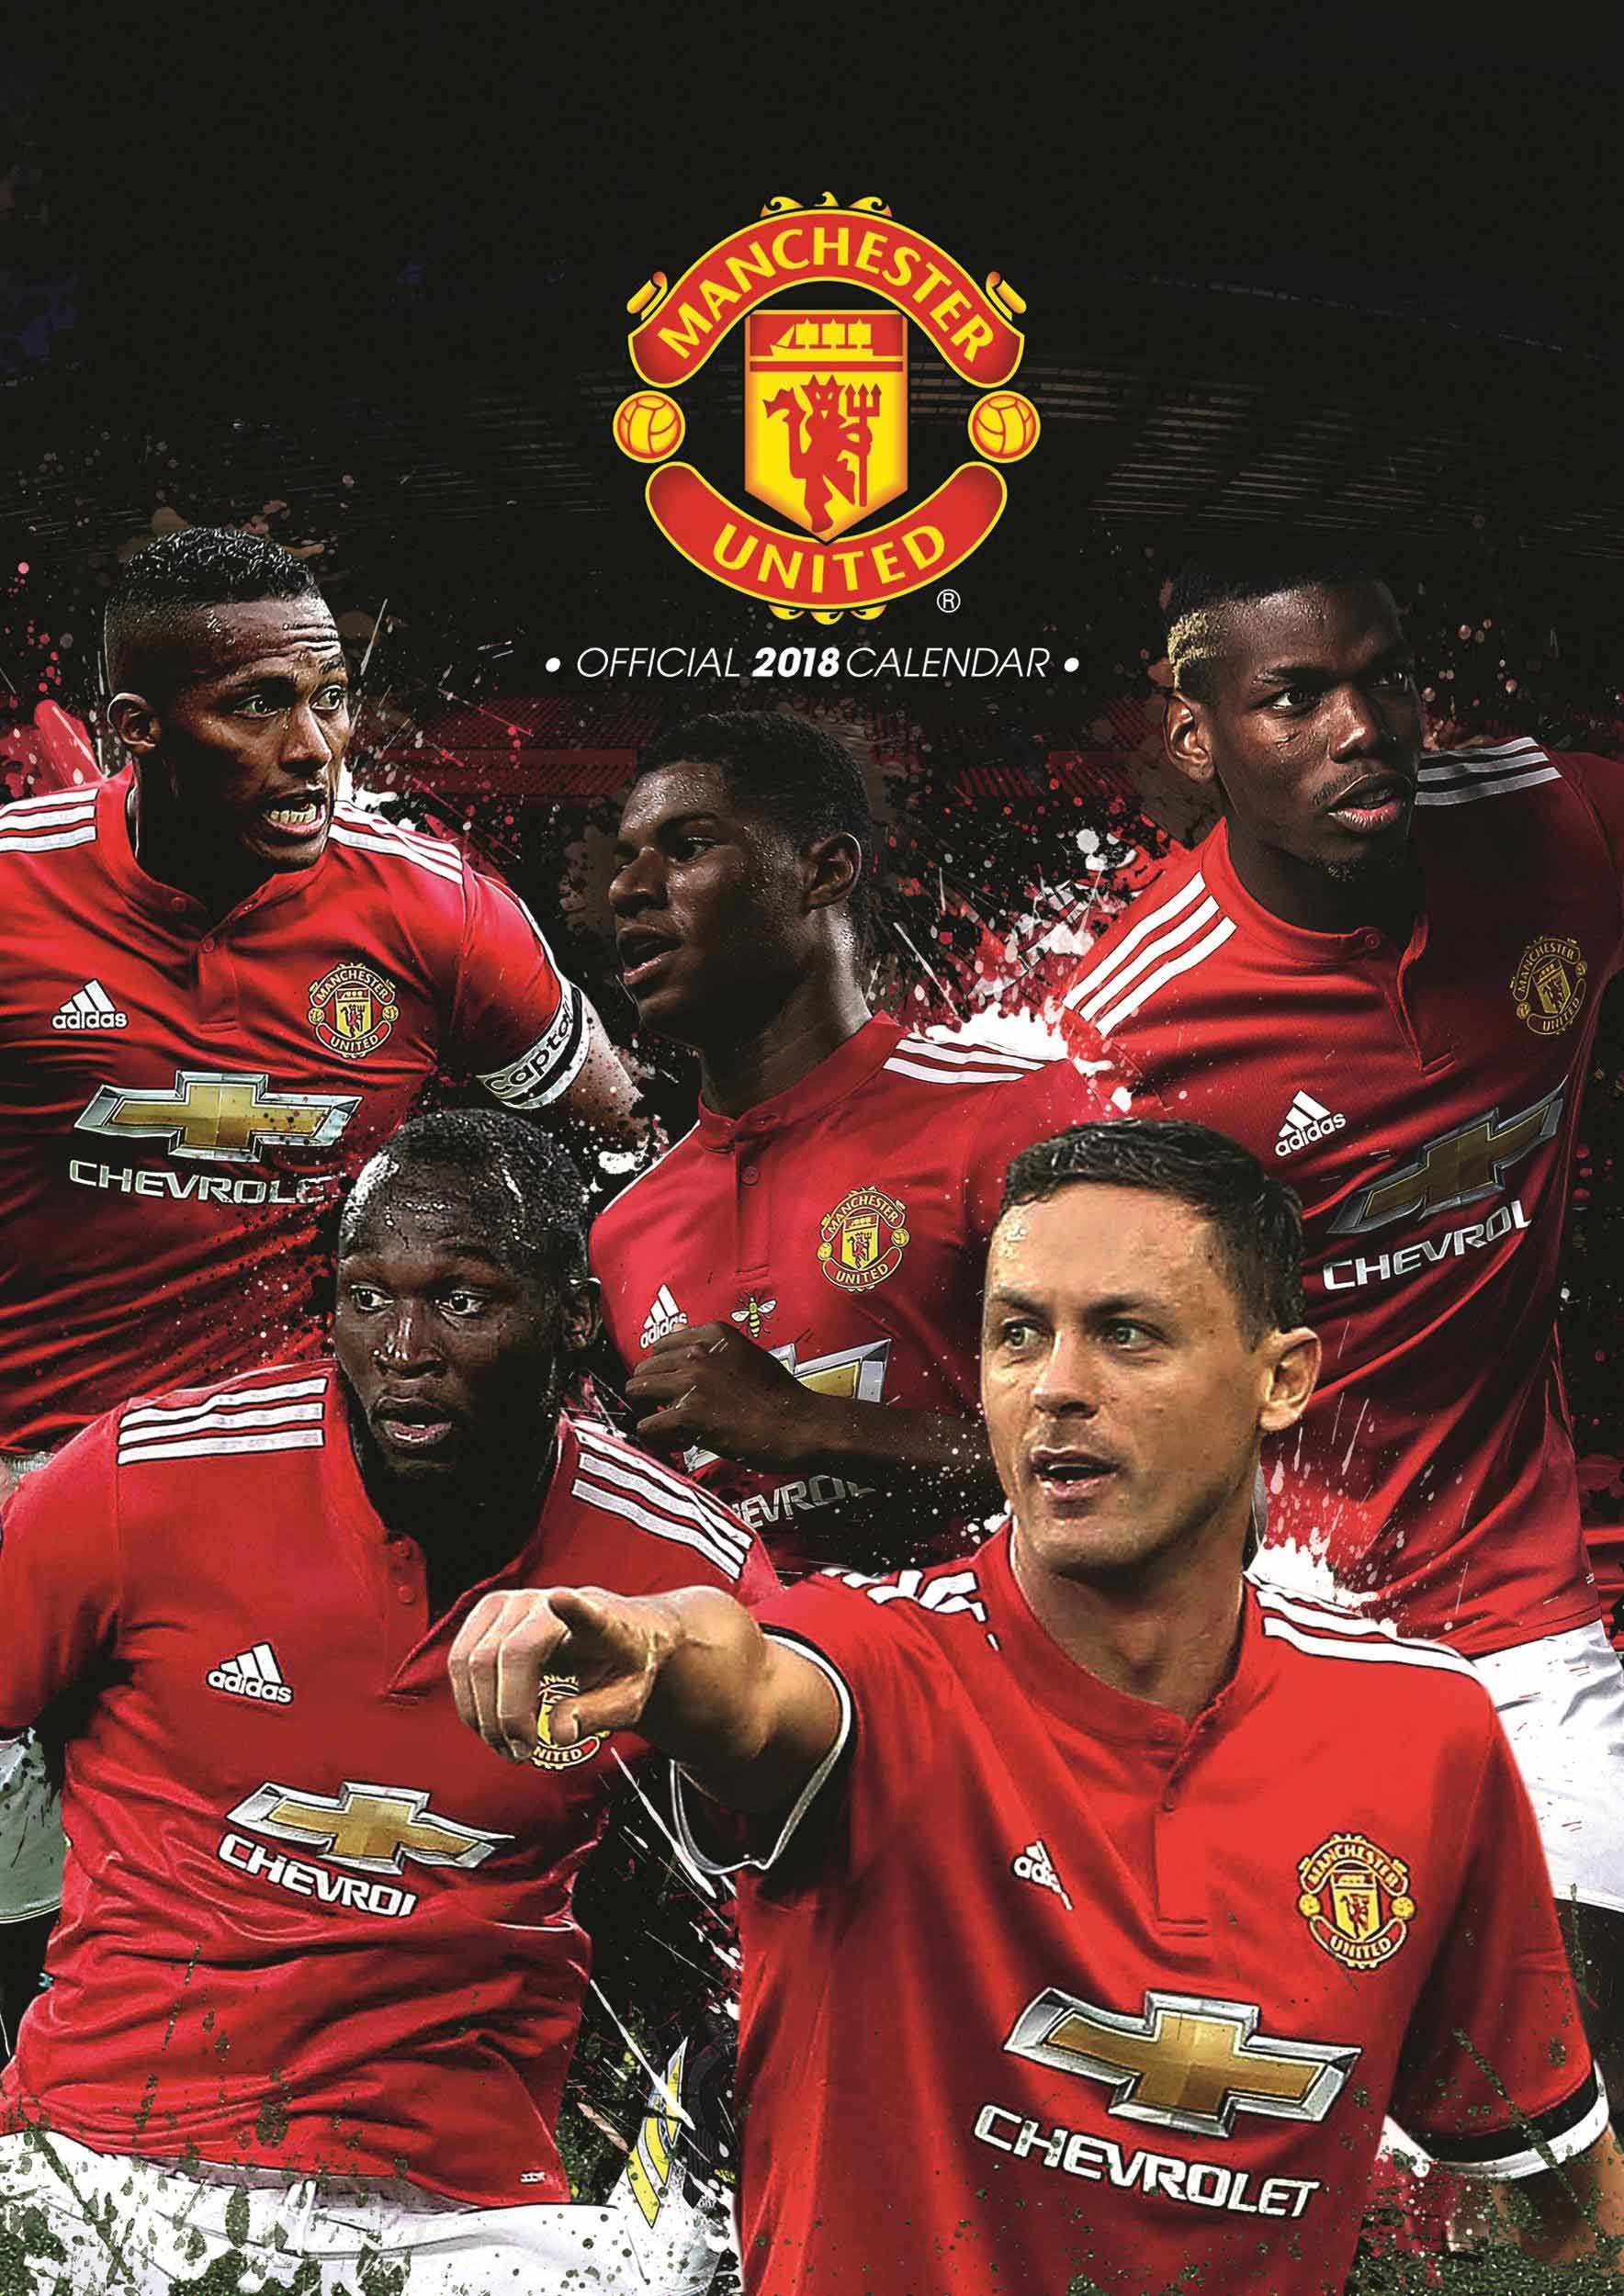 Man Utd Wallpapers 2018 68 images 1768x2500